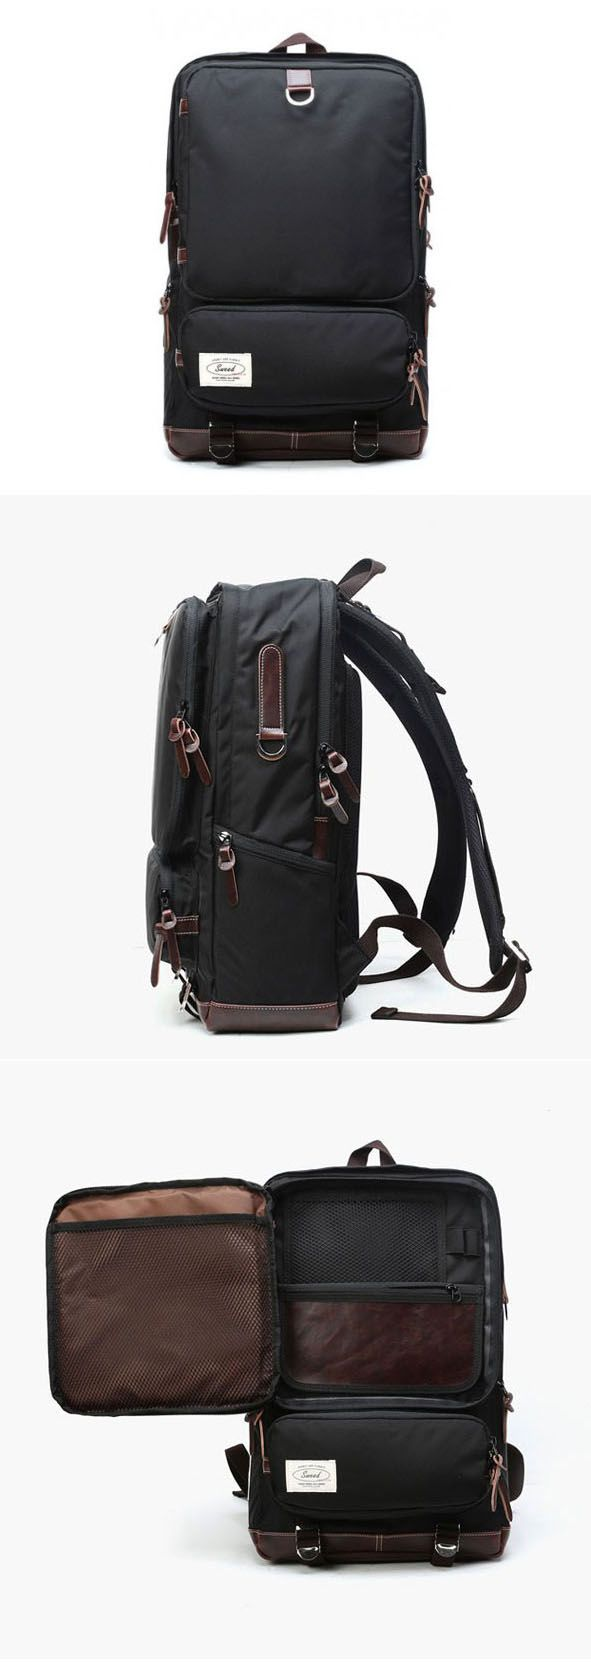 25+ best ideas about Backpacks on Pinterest